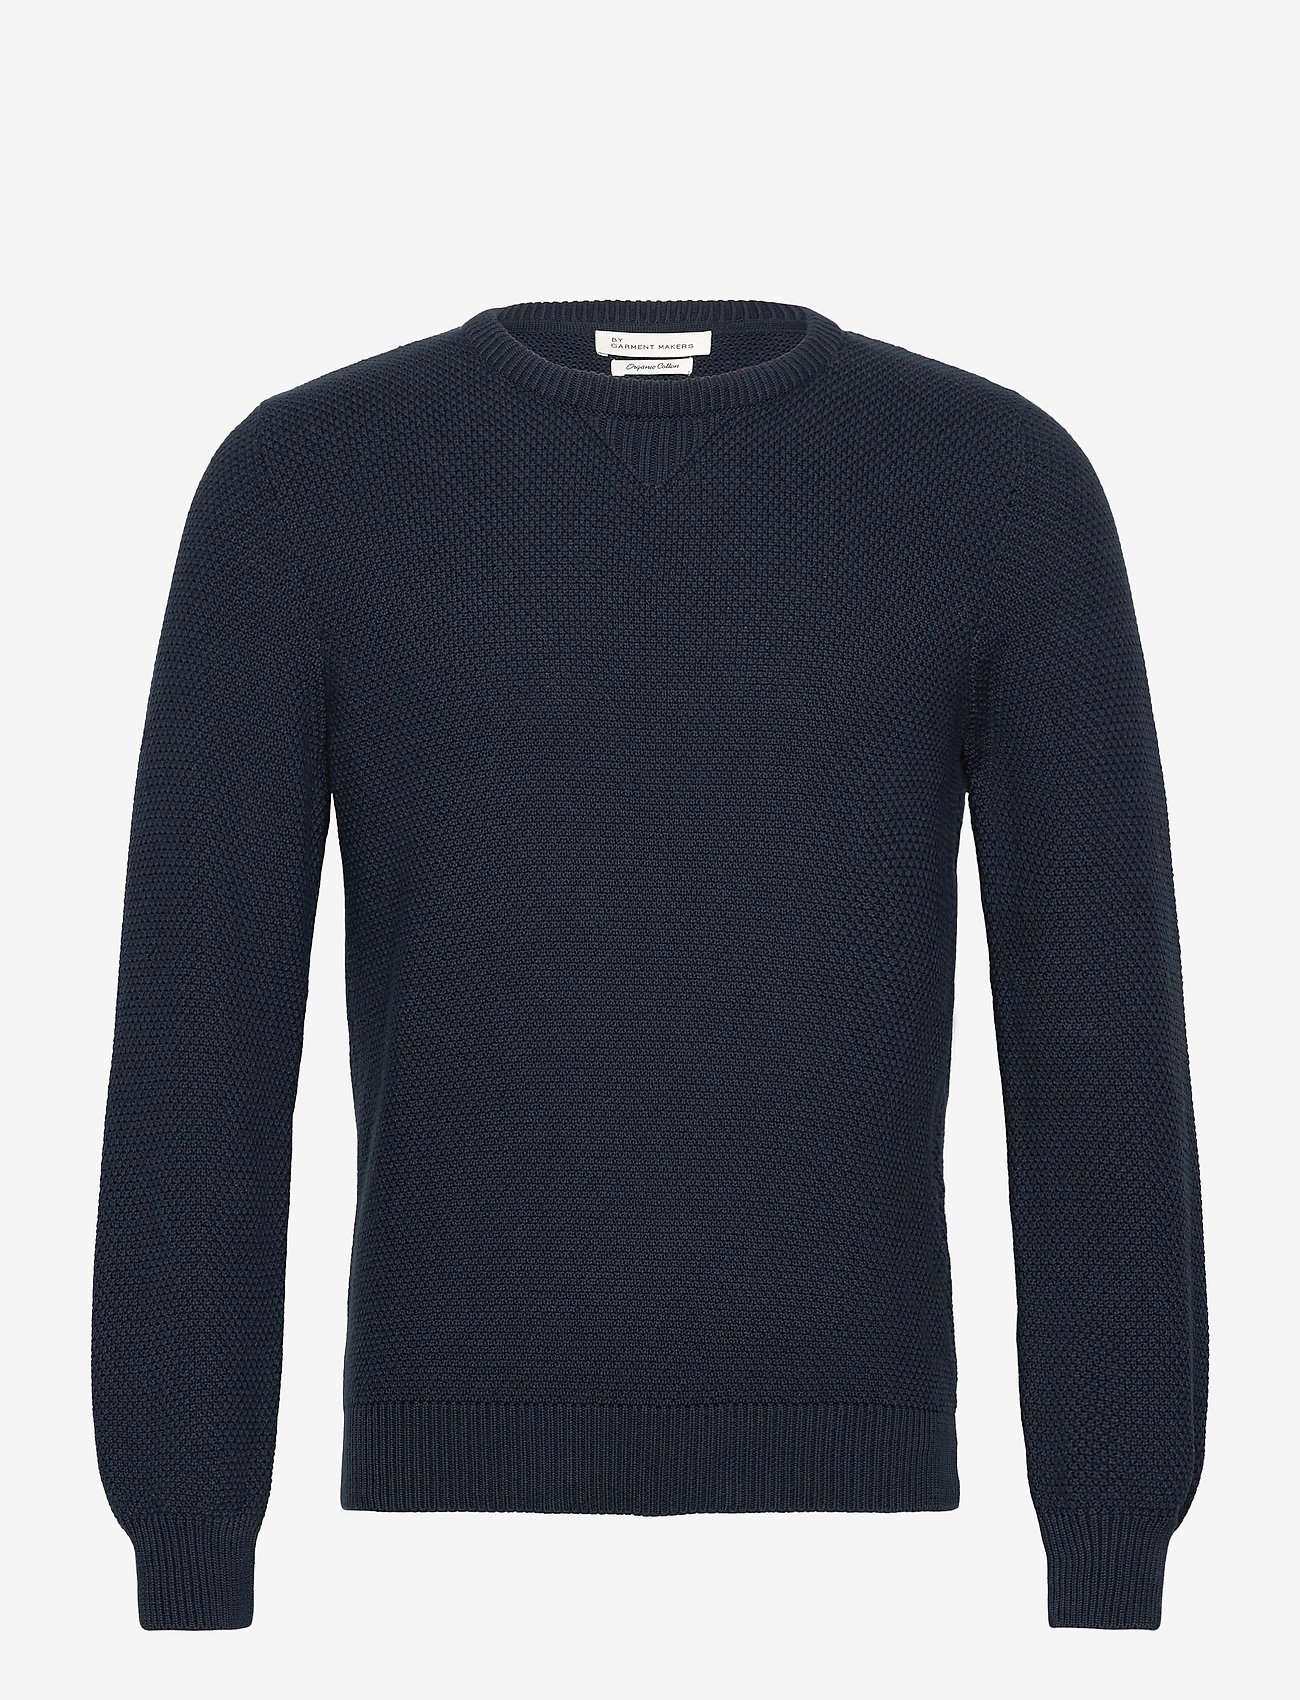 By Garment Makers - The Organic Waffle Knit - tricots basiques - navy blazer - 0